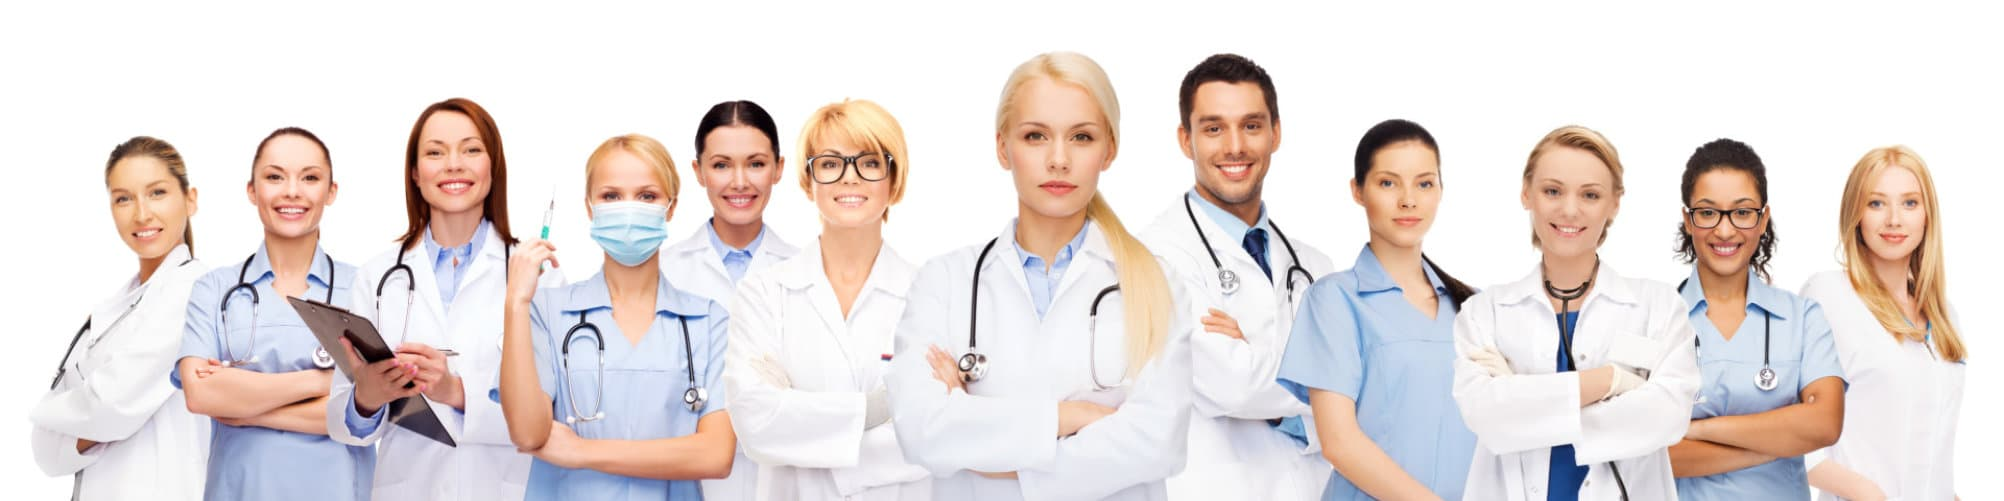 Team or group of doctors and nurses.